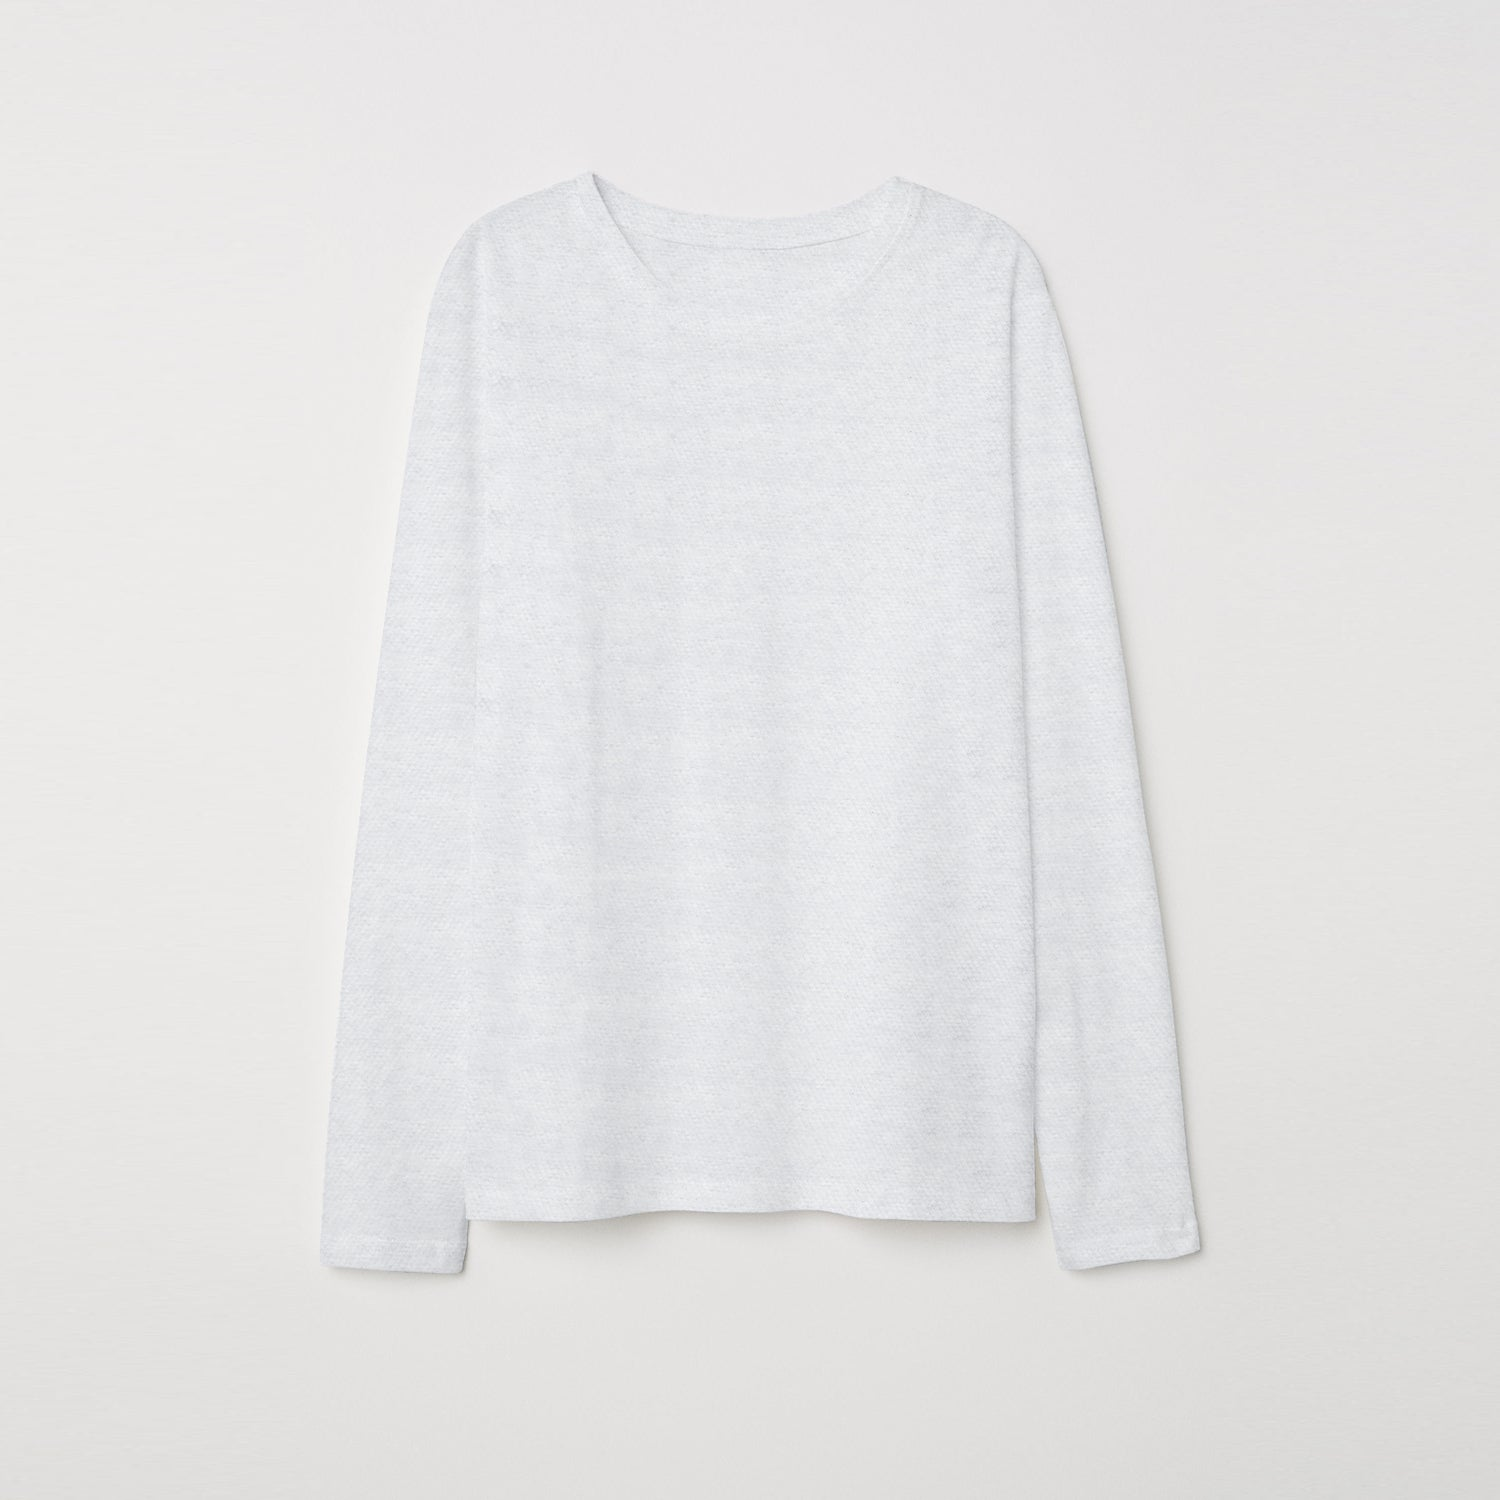 NEXT P.Q Long Sleeve Tee Shirt For Kids-White Melange Quilted-BE9406